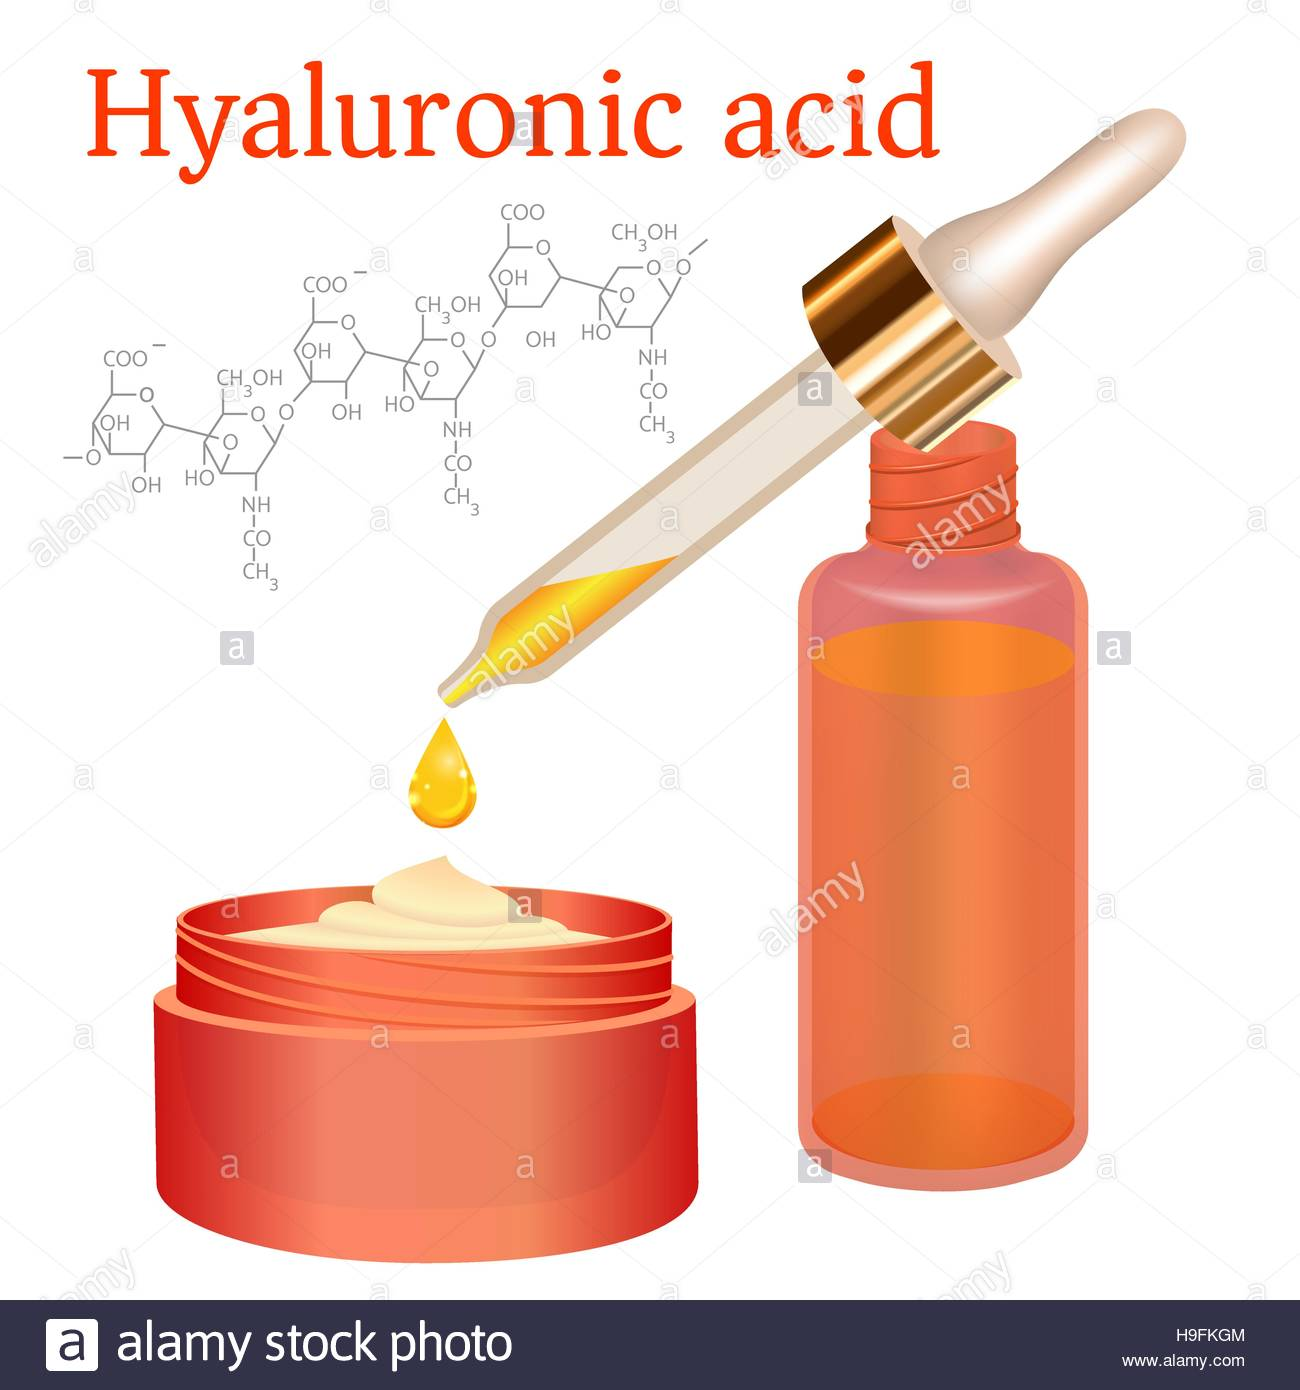 hyaluronic-acid-cream-and-emulsion-with-drop-collagen-serum-skin-care-H9FKGM